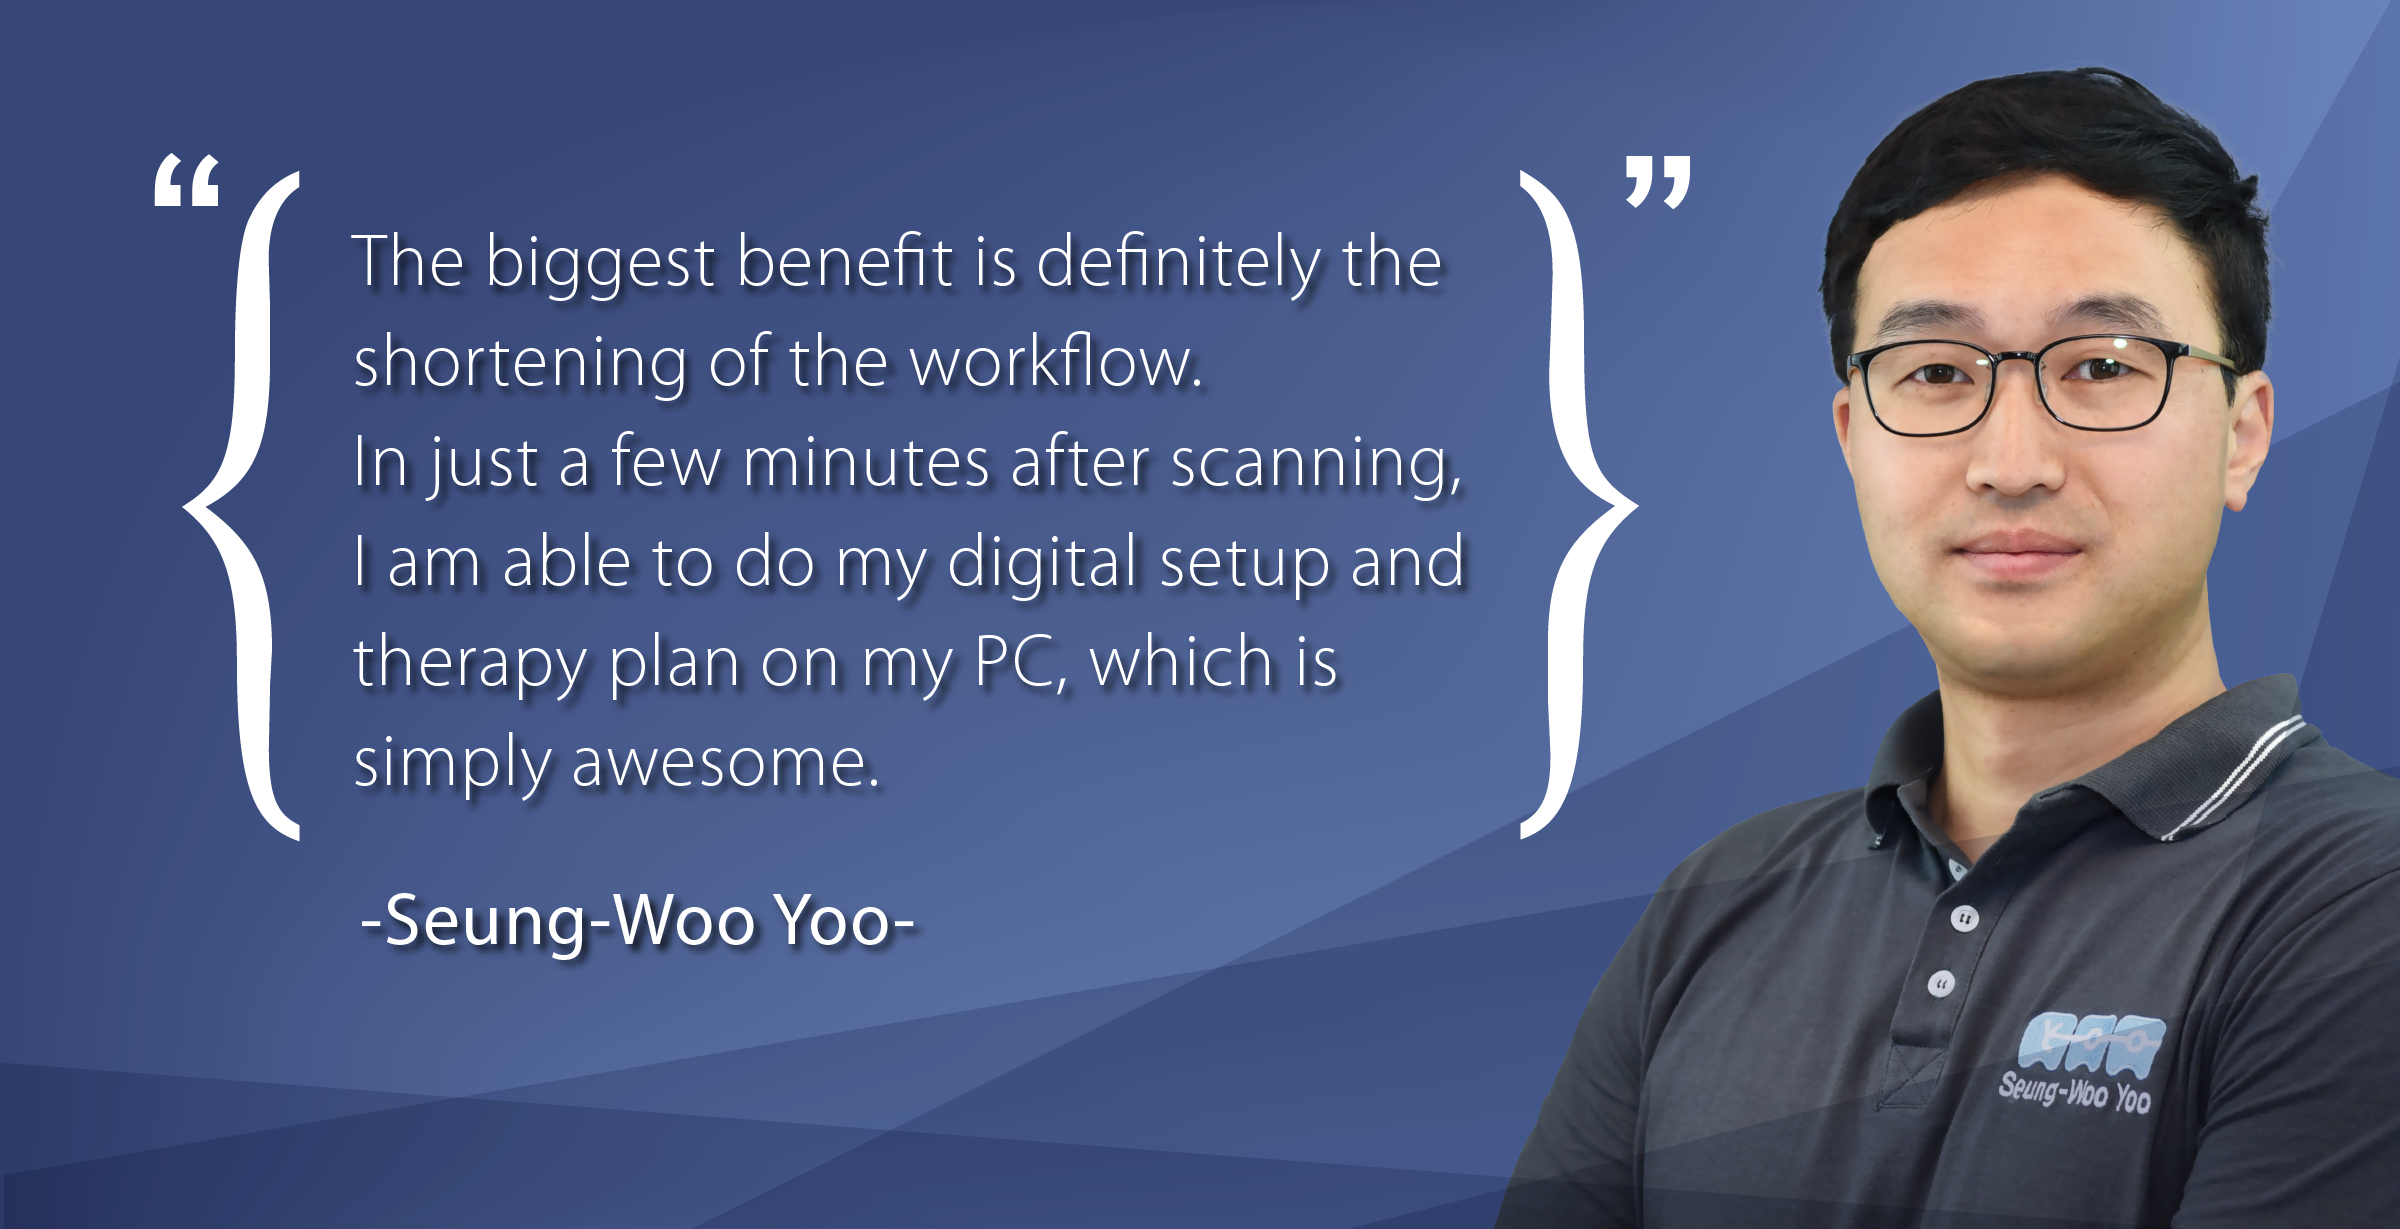 Interview: Orthodontist Seung-Woo Yoo on Why Going Digital is Worth it